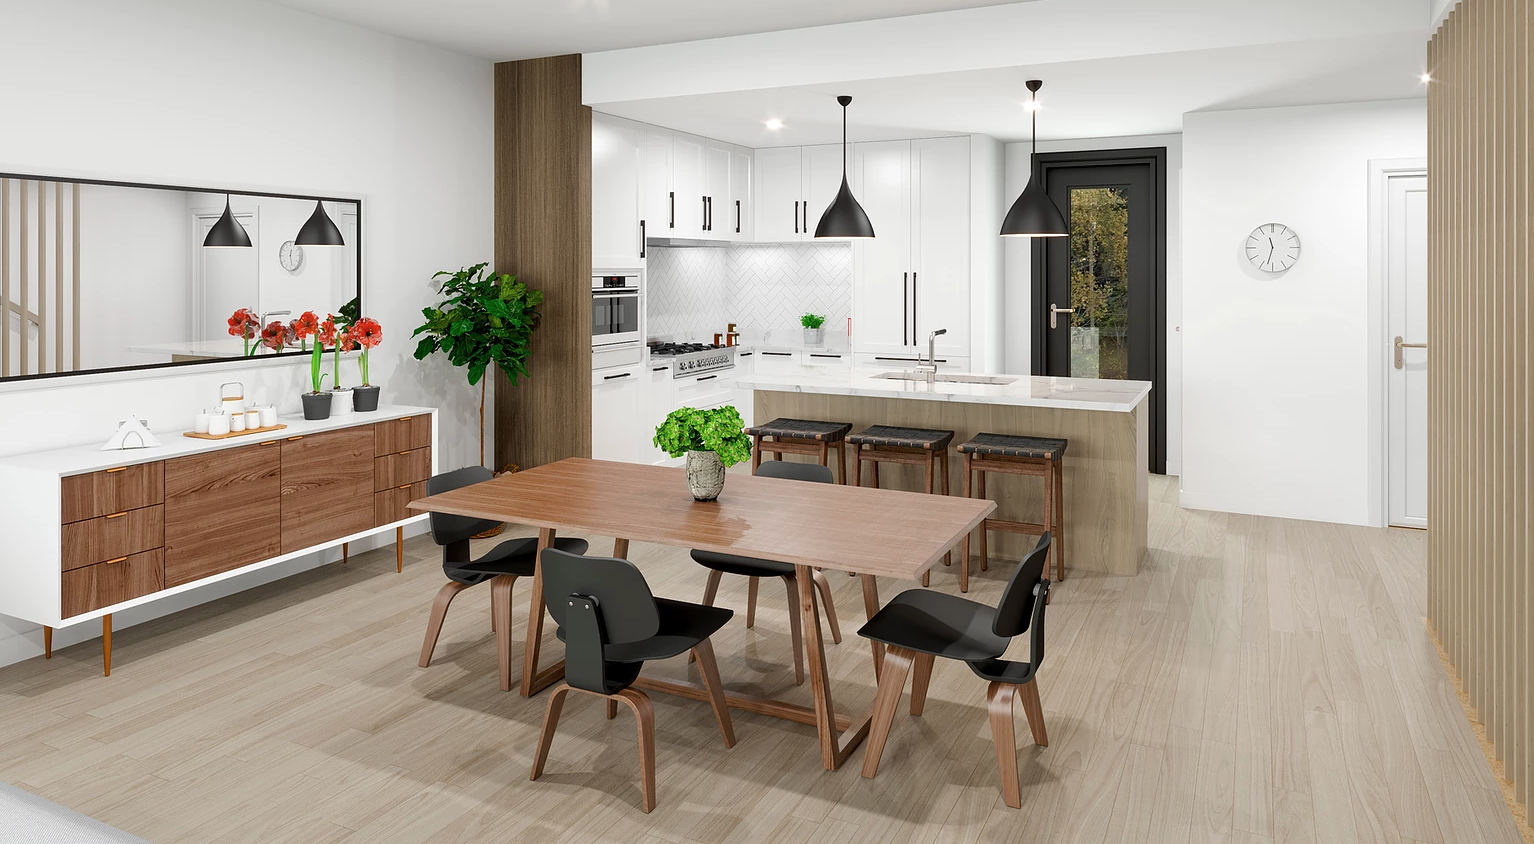 The Strand kitchen concept